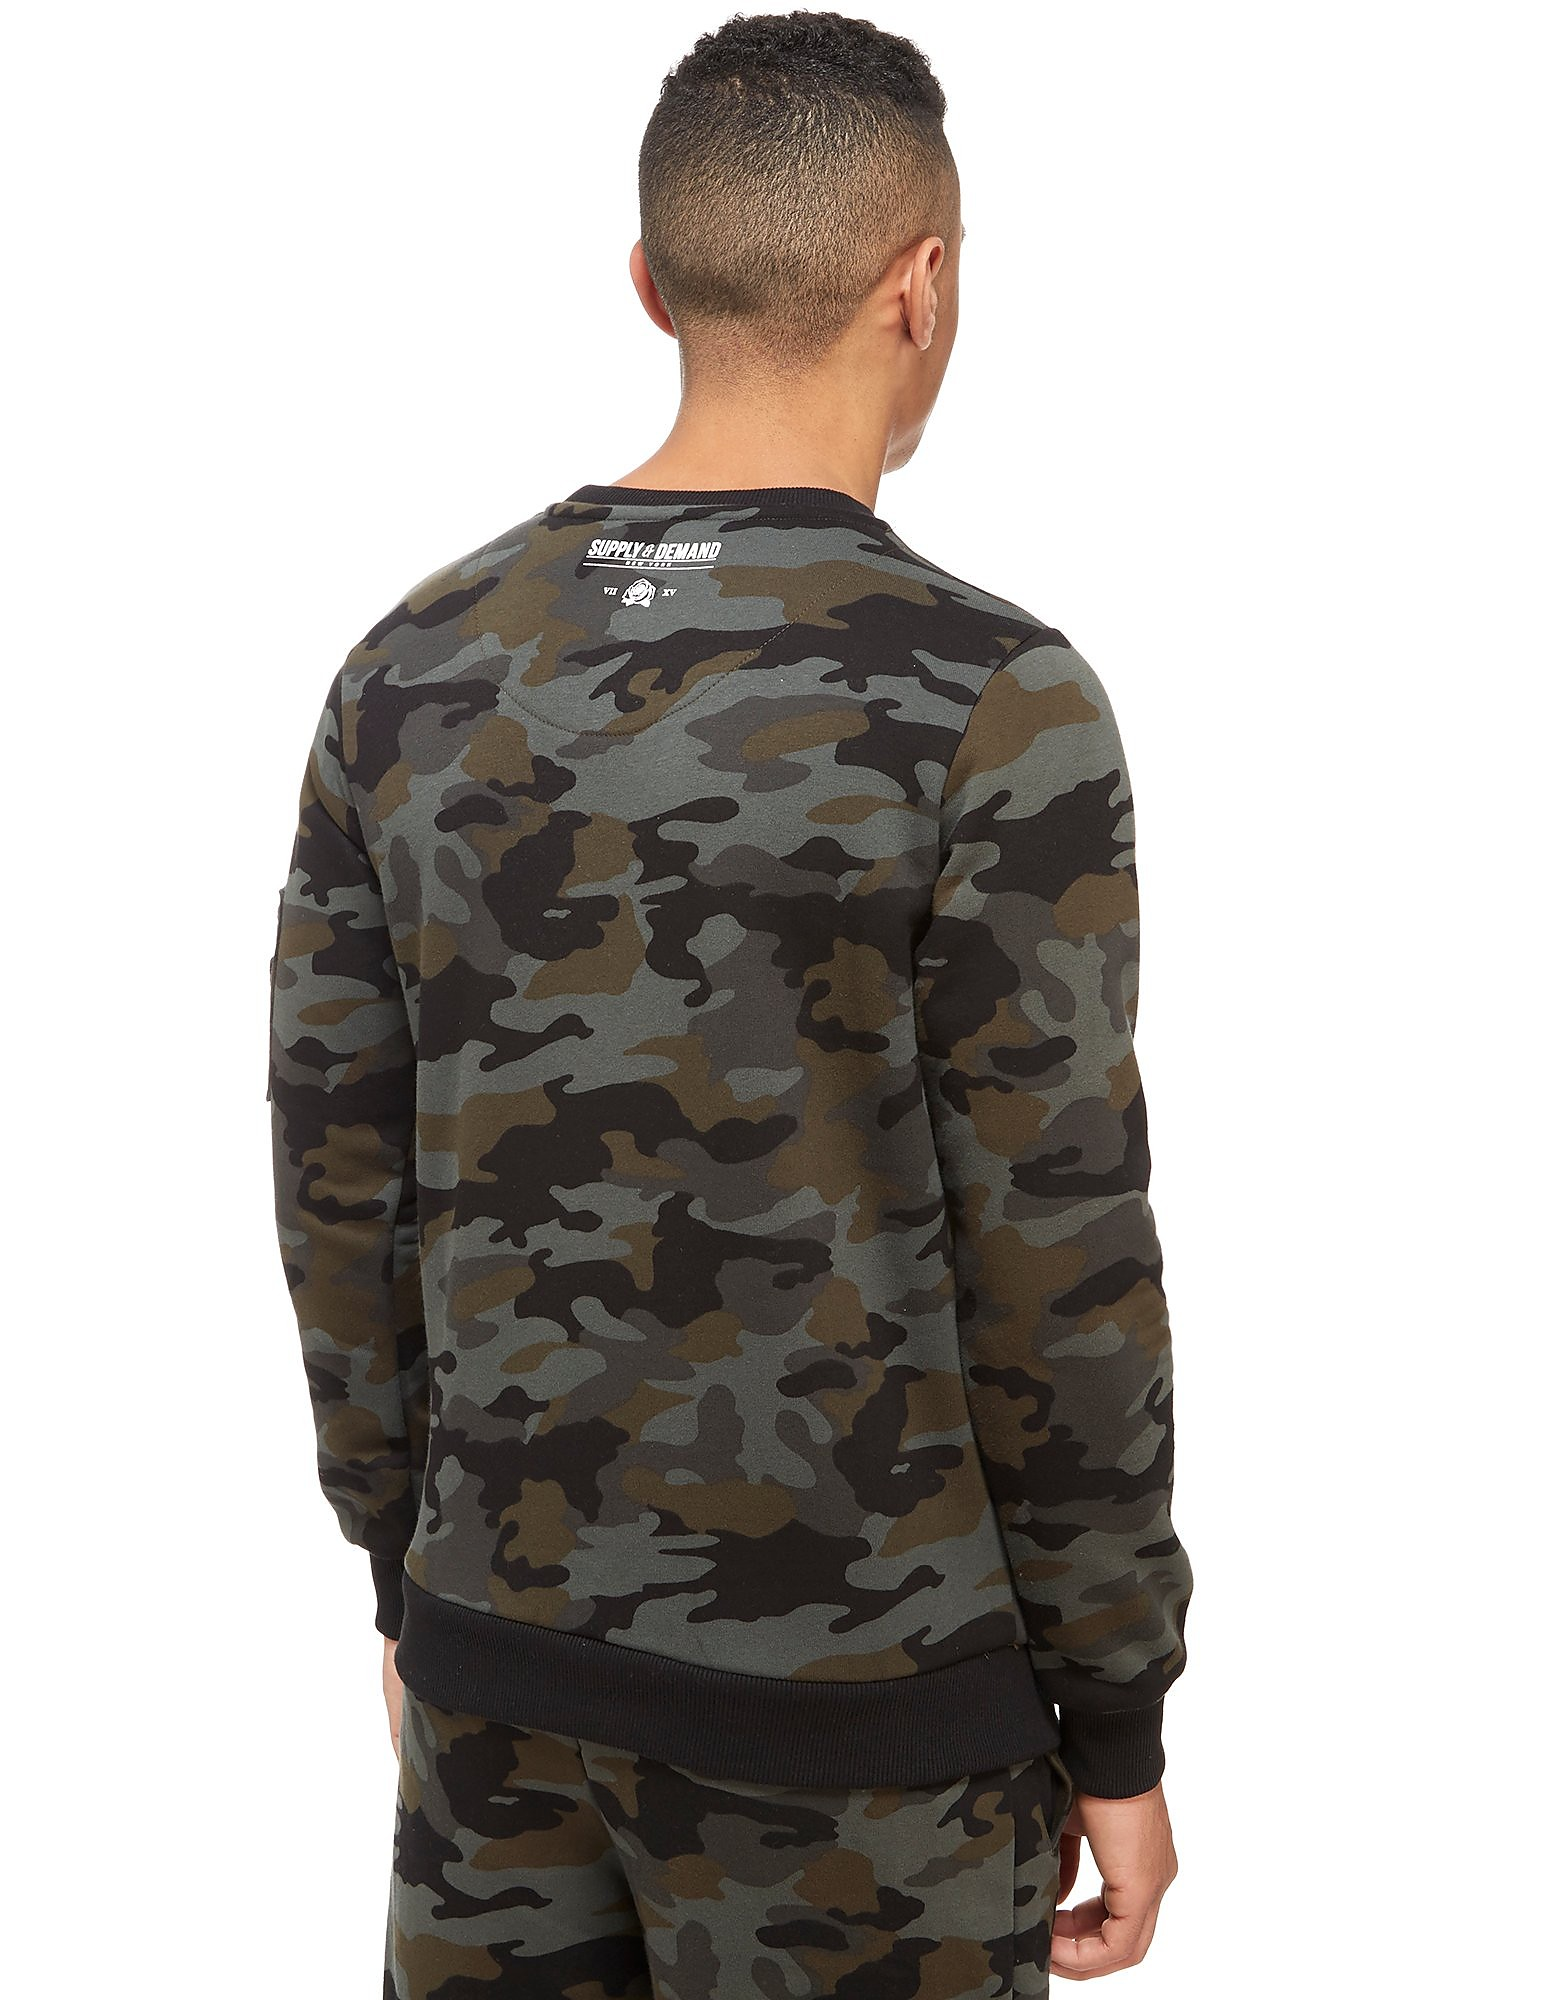 Supply & Demand Ammo Crew Sweatshirt